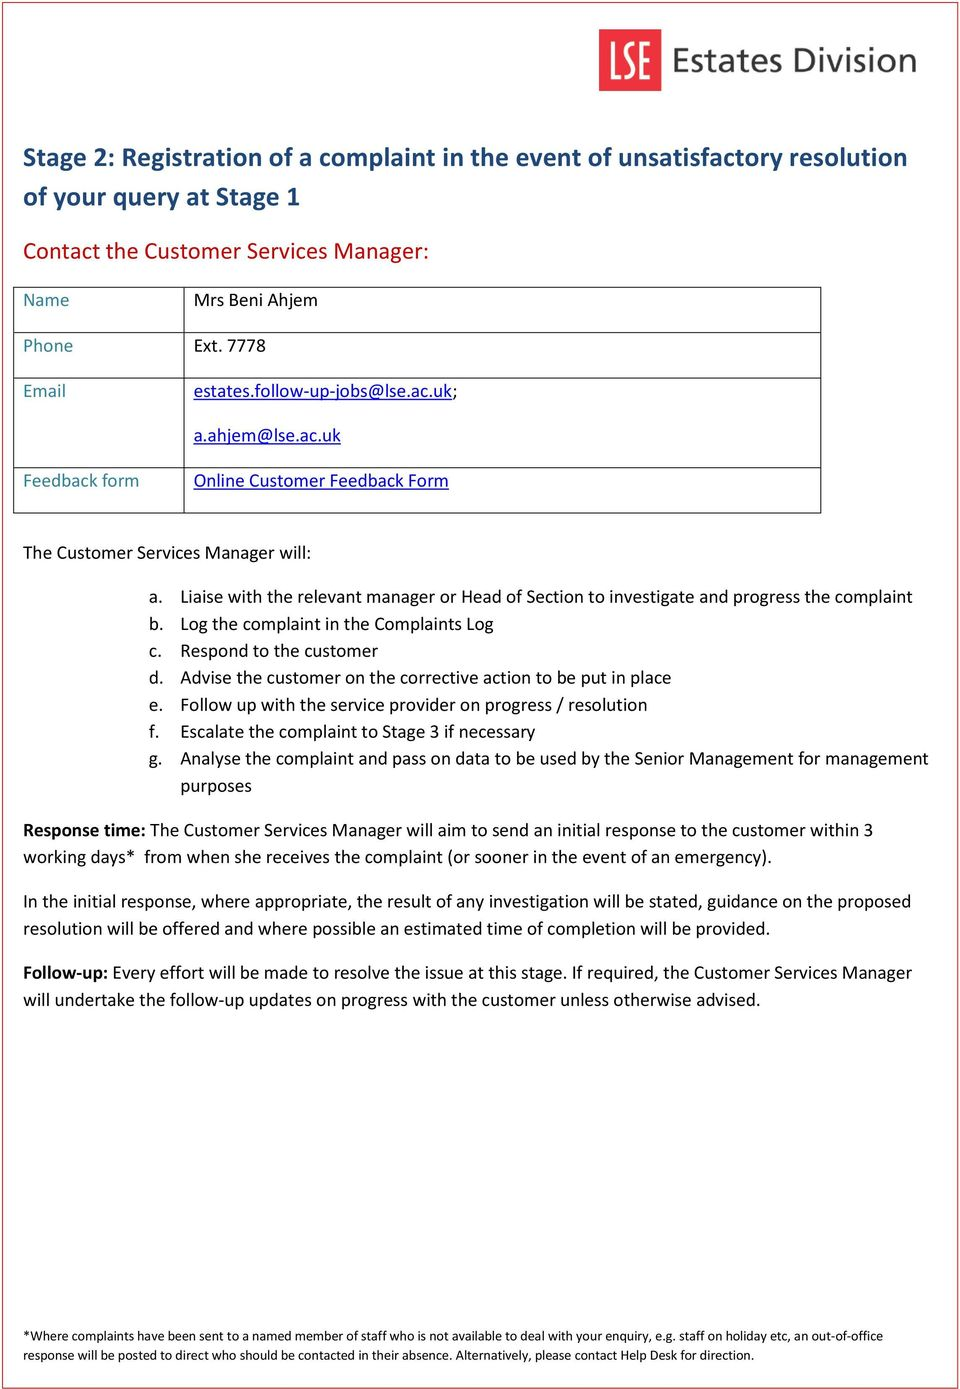 Liaise with the relevant manager or Head of Section to investigate and progress the complaint b. Log the complaint in the Complaints Log c. Respond to the customer d.